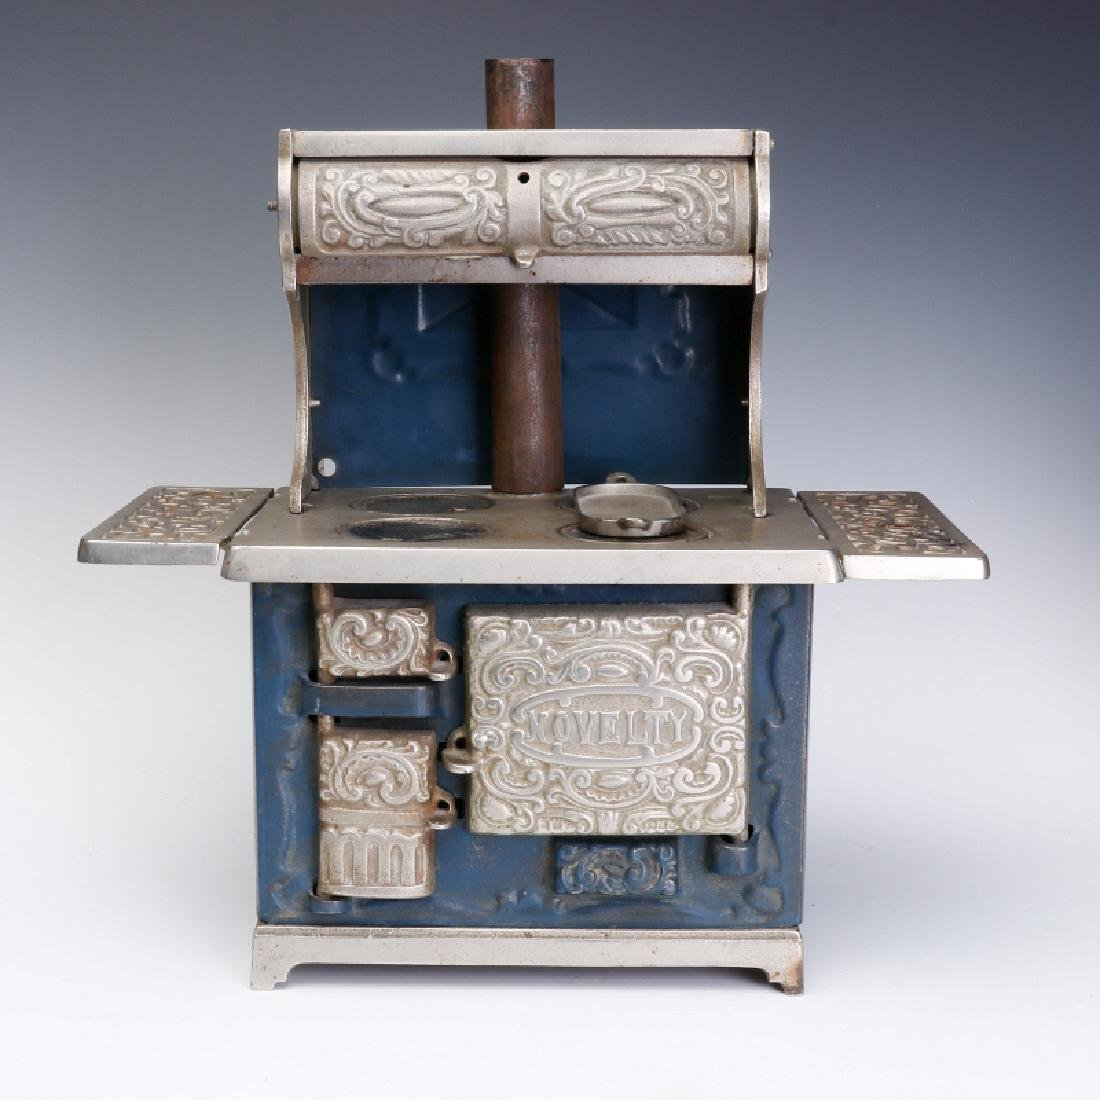 A 19TH CENTURY KENTON 'NOVELTY DELUXE' TOY STOVE